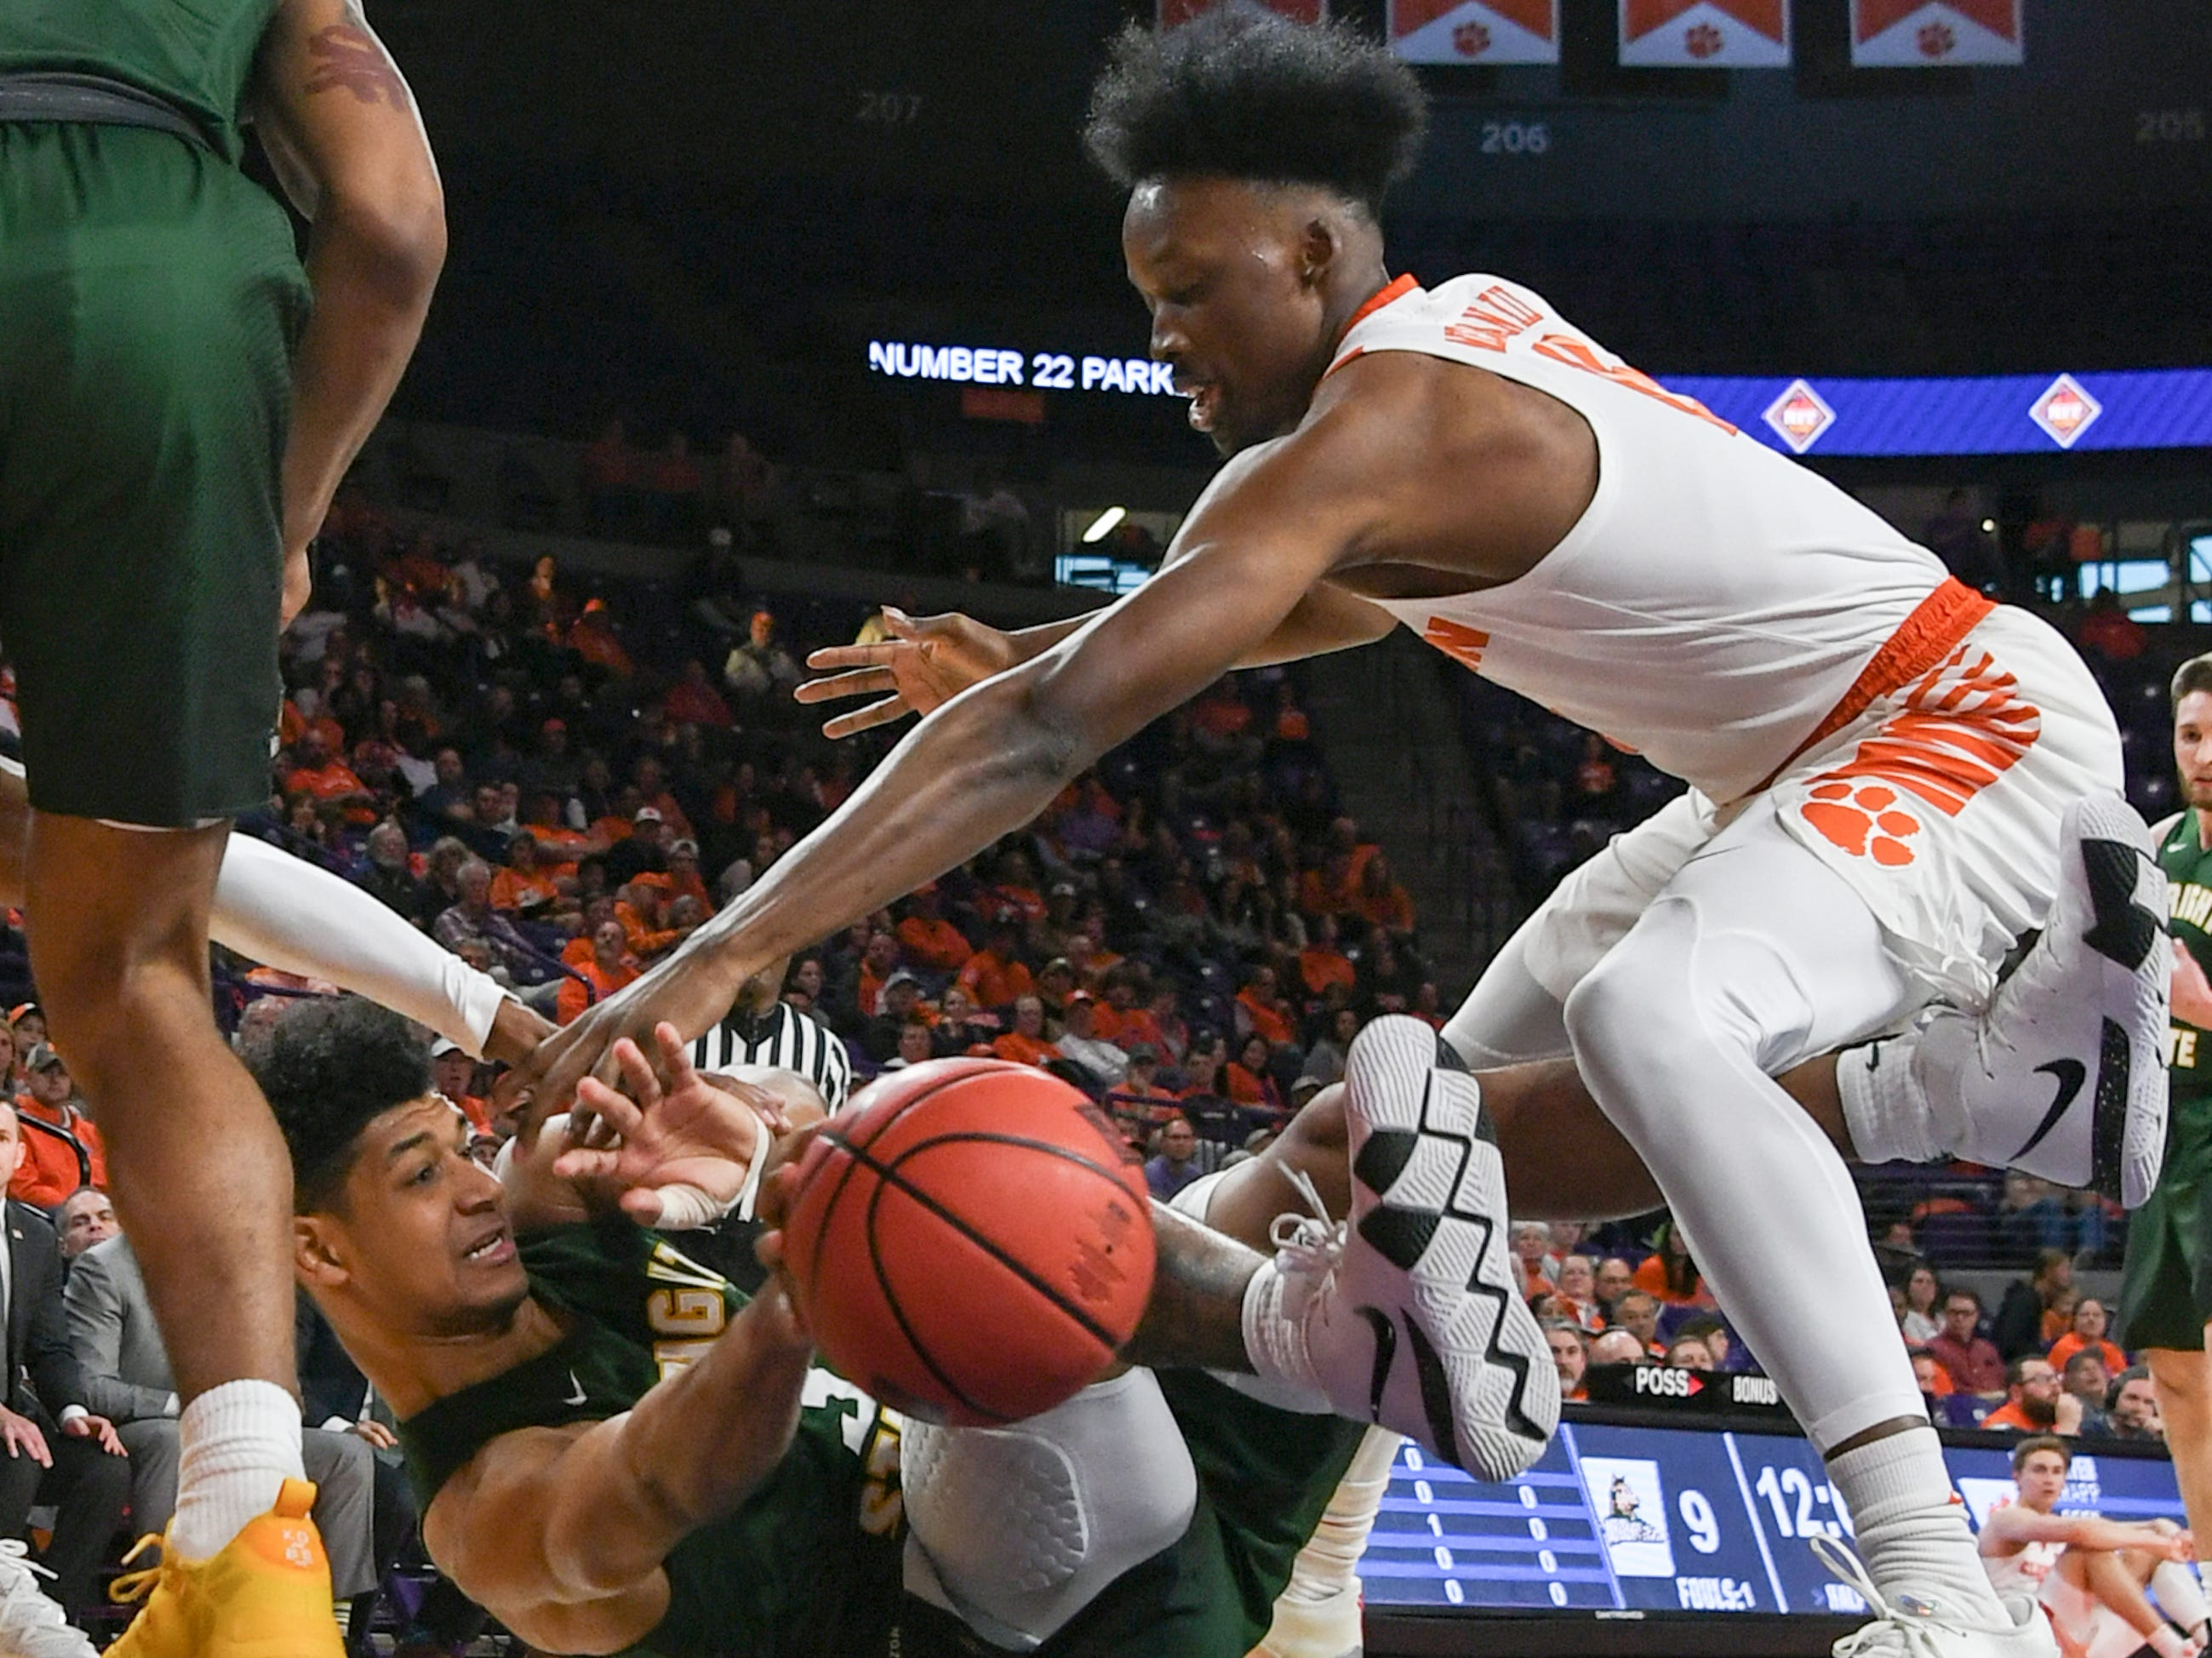 Wright State guard Malachi Smith(13) and Clemson forward John Newman (15) reach for a loose ball during the first half of the NIT at Littlejohn Coliseum in Clemson Tuesday, March 19, 2019.